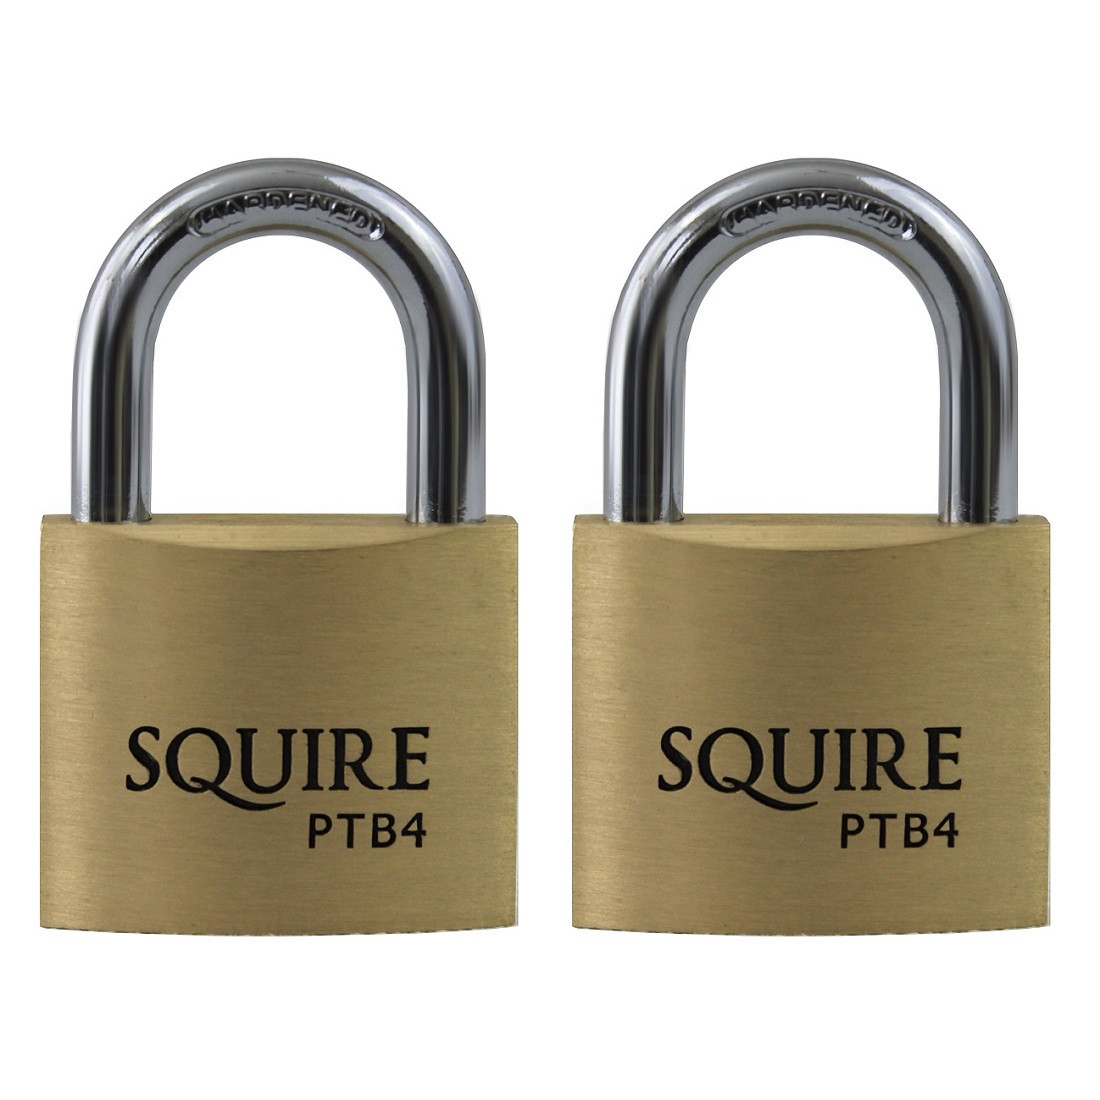 Squire Panther PTB4 Solid Brass Keyed Alike Twin Pack 40mm Padlocks